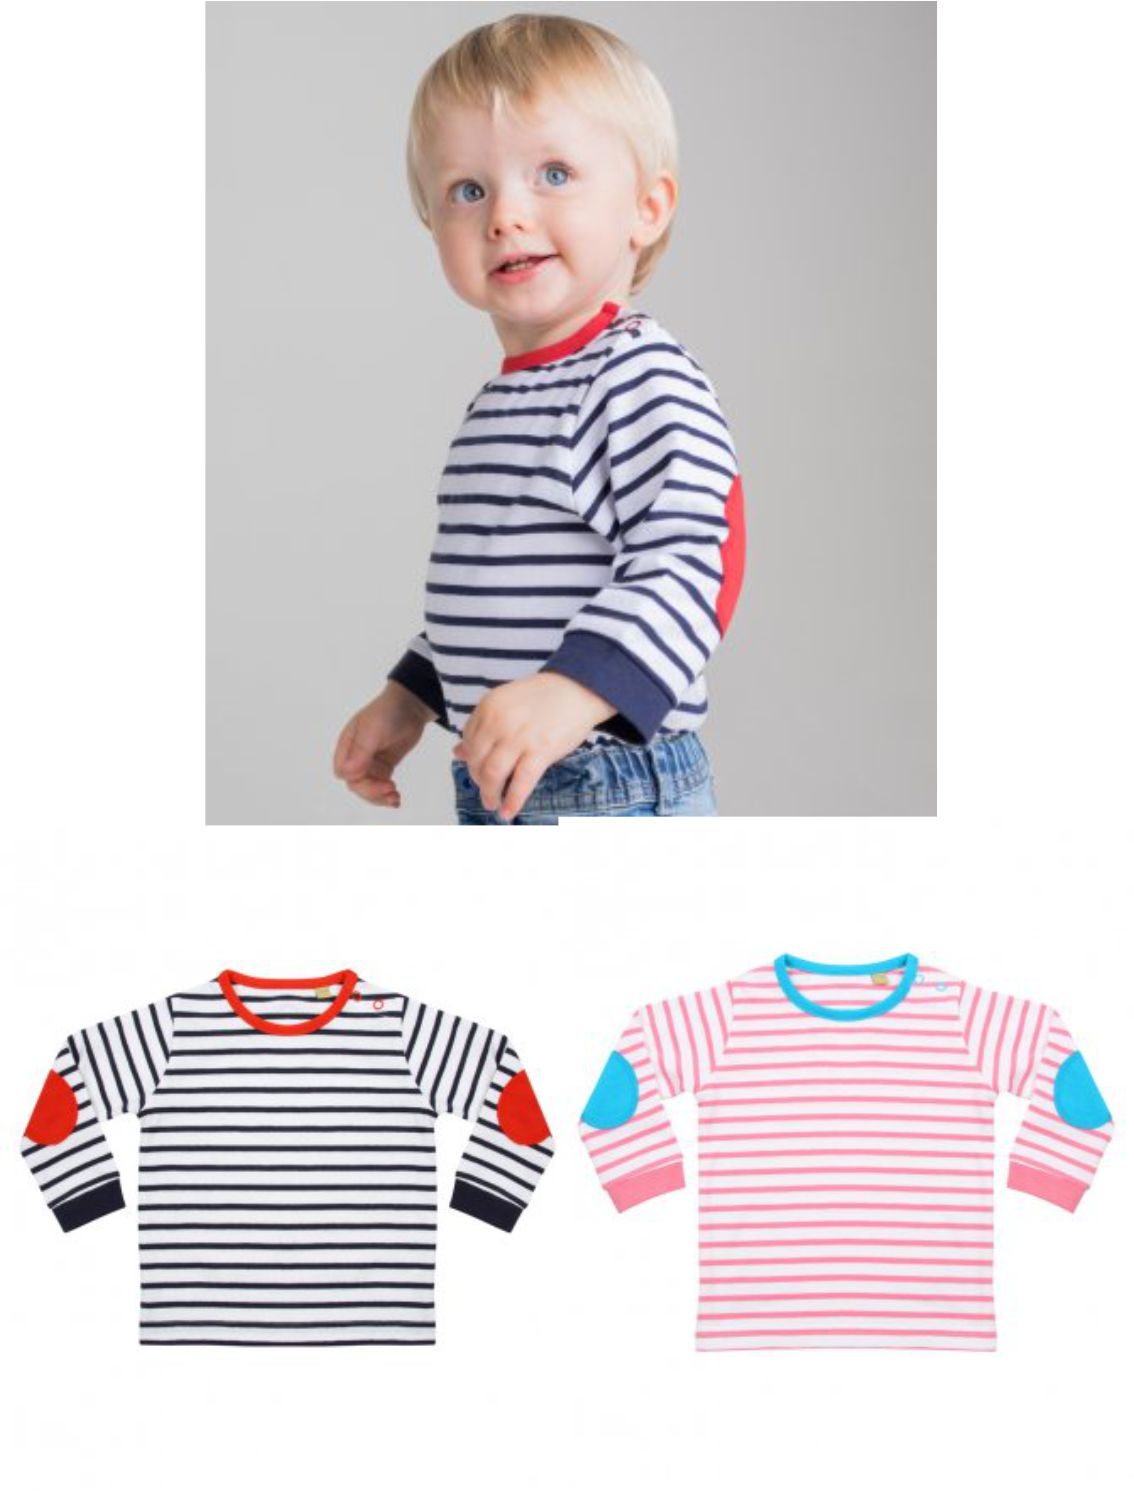 4a0c65a5c LW28T Larkwood Baby/Toddler Long Sleeve Striped T-Shirt - £7.99 ...